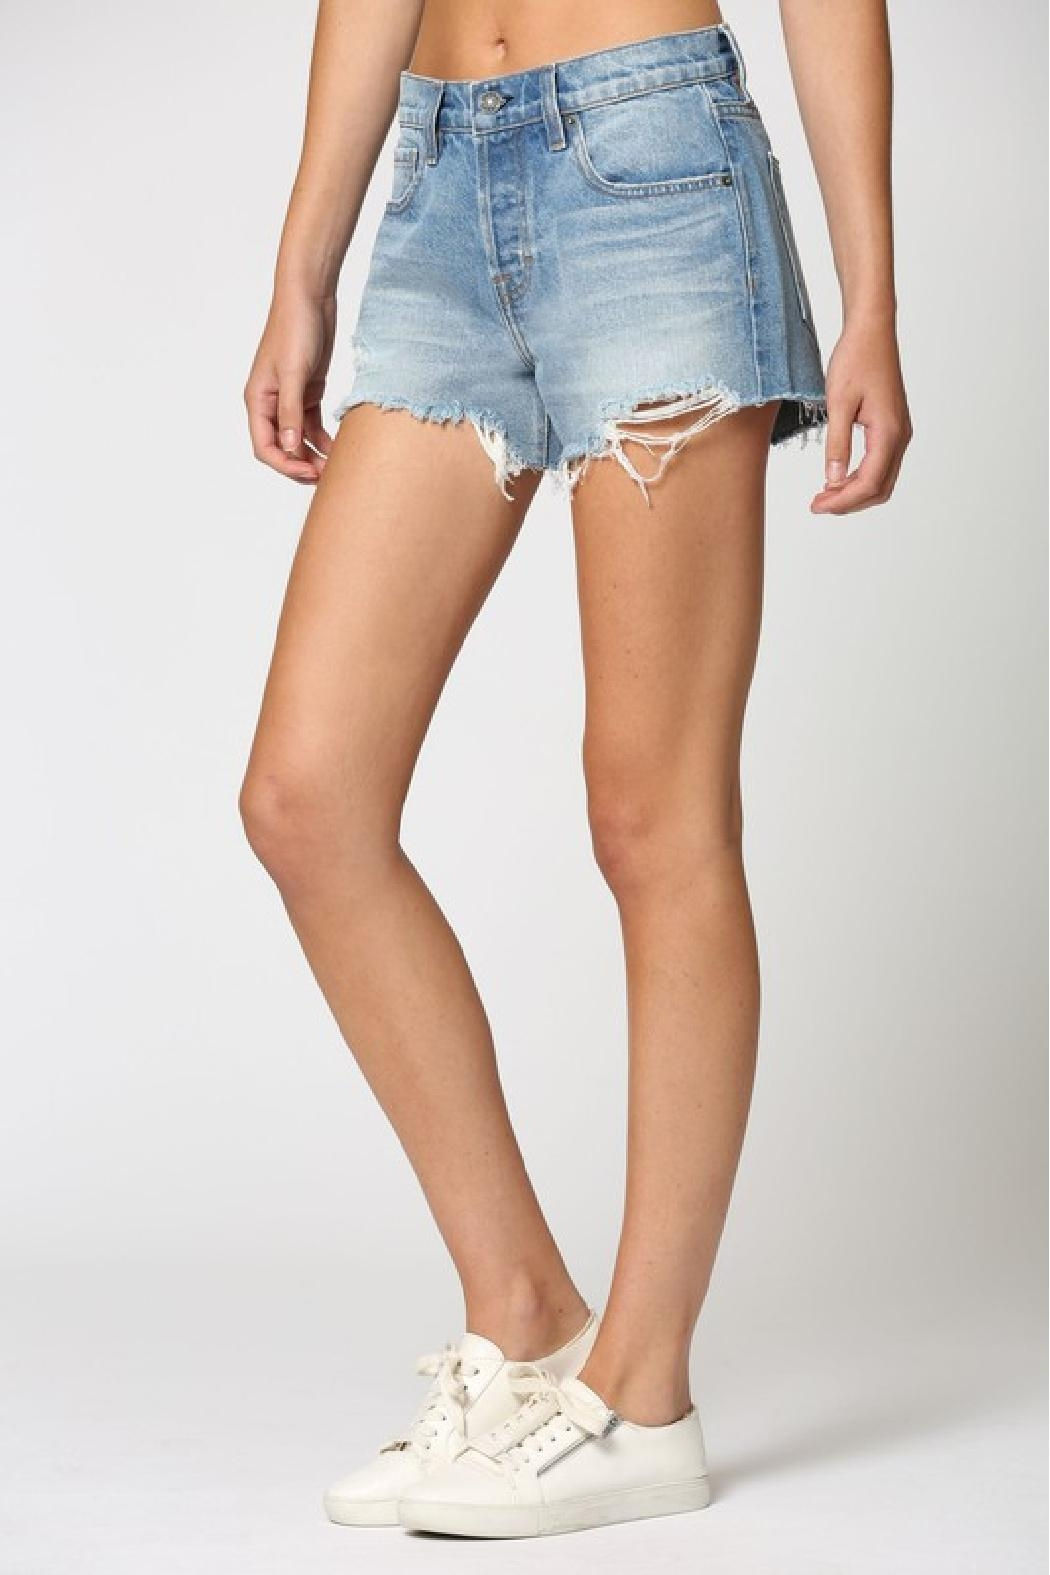 Hidden Jeans Kenzie Mid-Rise Shorts - Side Cropped Image